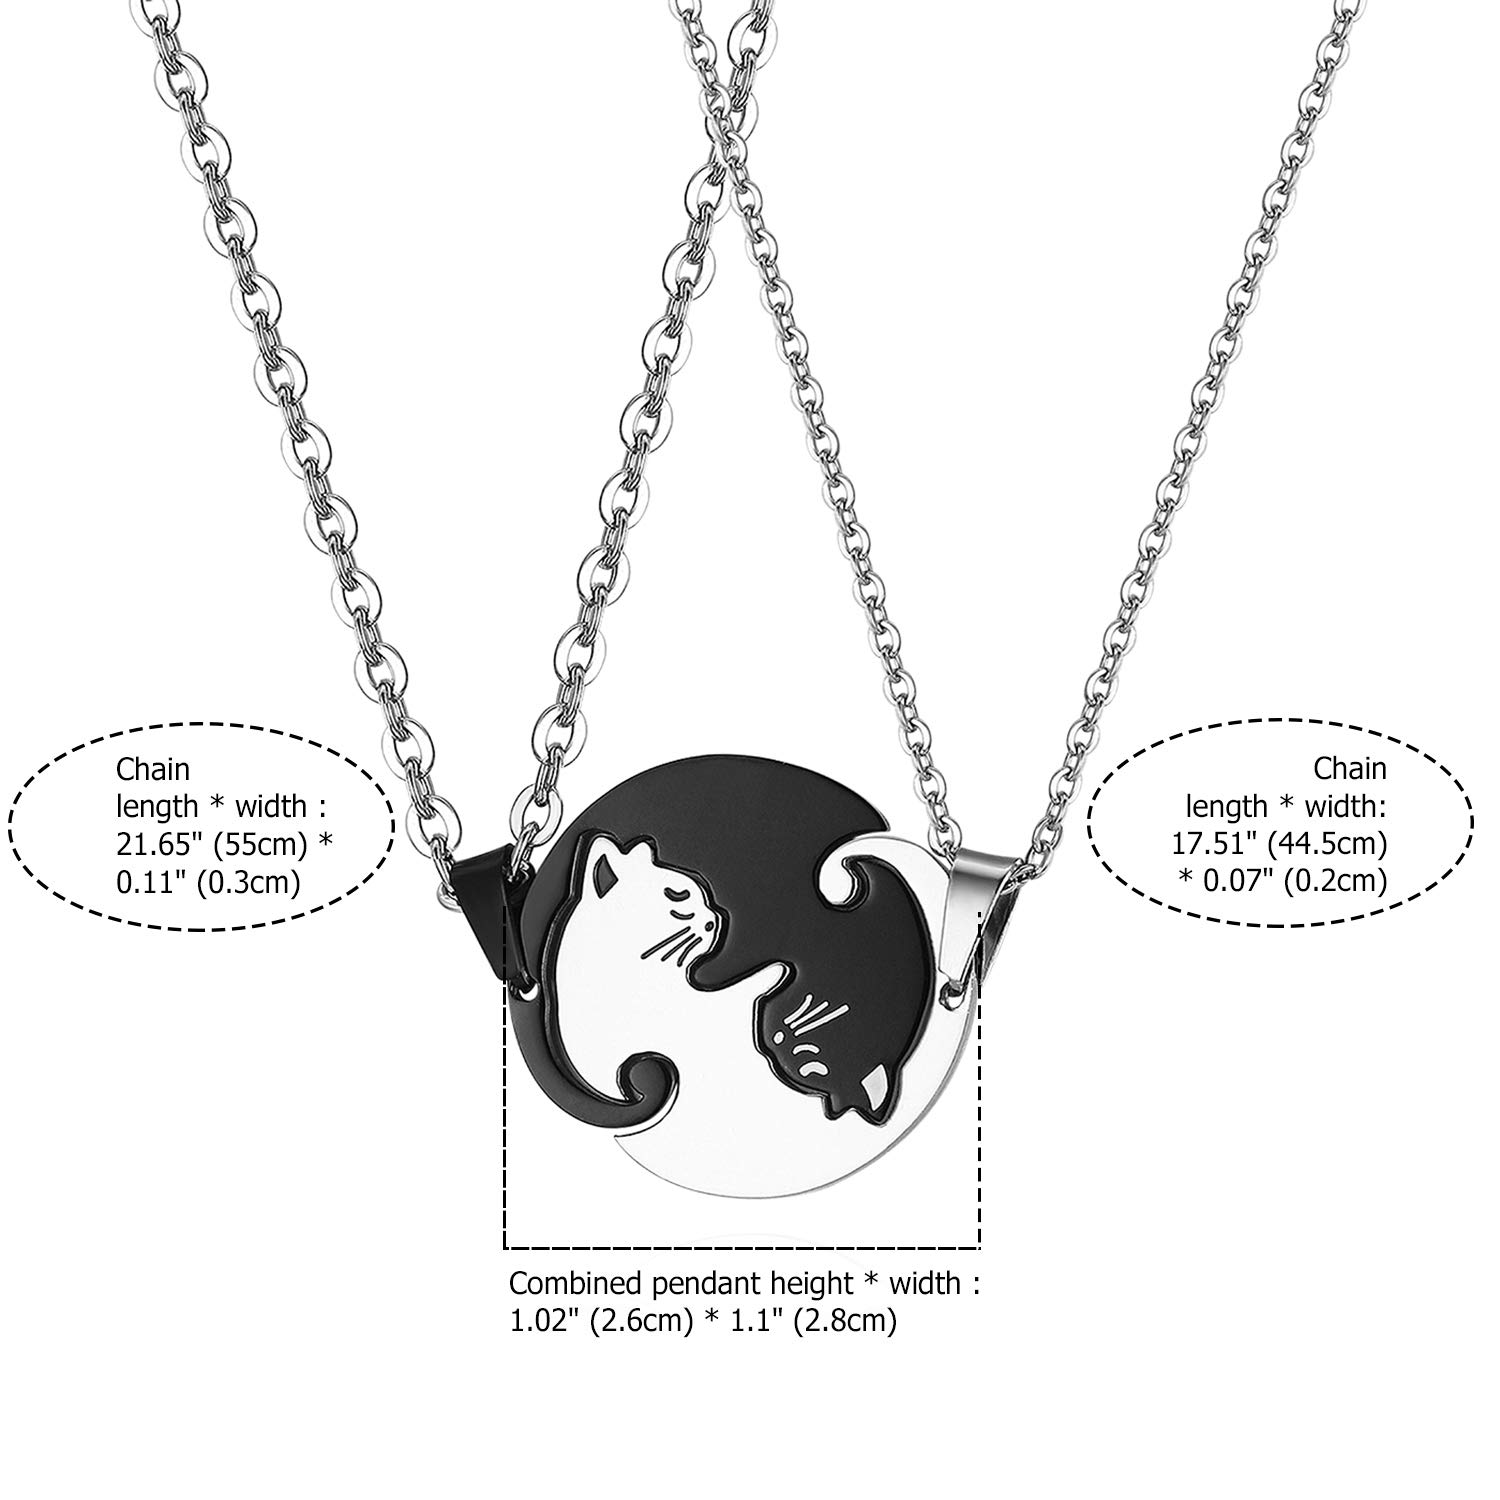 26313ec44 Cupimatch 2 Pcs Kitty Cat Pendant Couples Necklace, Stainless Steel  Matching Puzzle Love Cat Jewelry Set for Lovers Friends,22